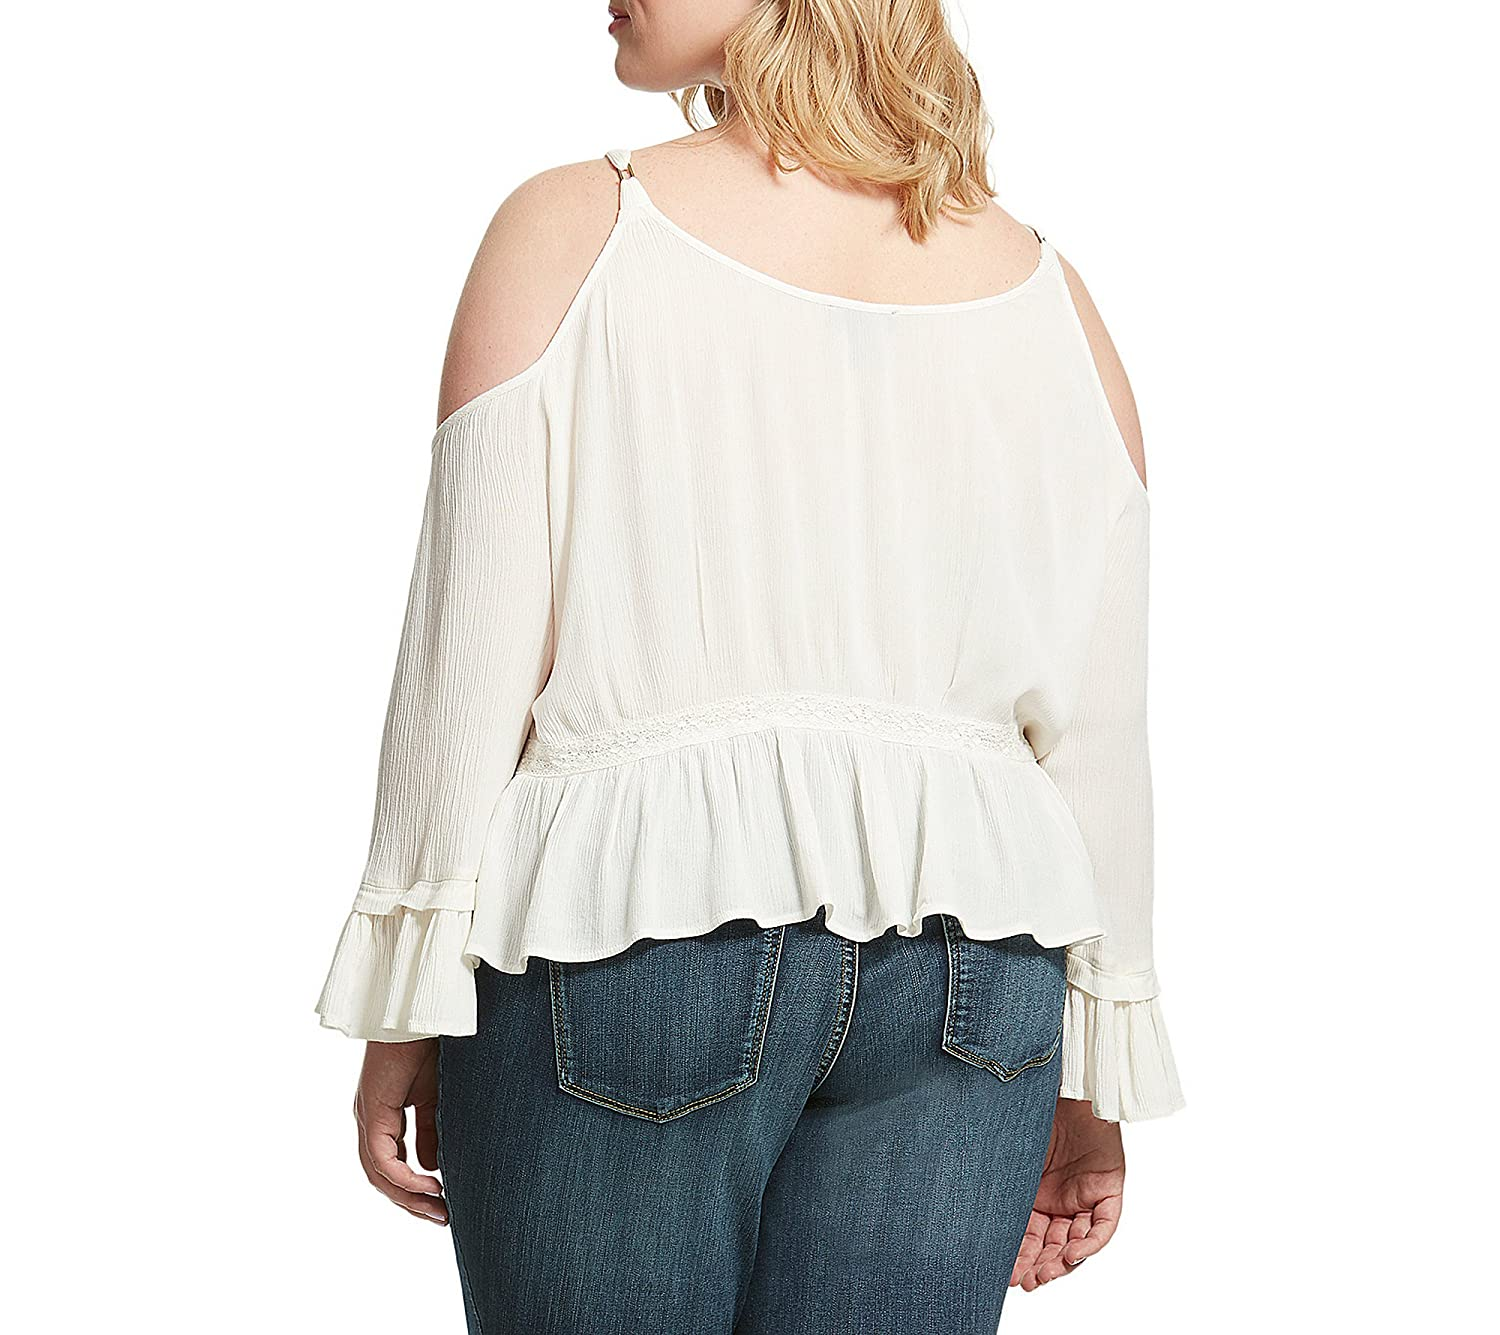 b98aaf544af4dc Jessica Simpson Plus Size Cold-Shoulder Peasant Top 2X at Amazon Women s  Clothing store